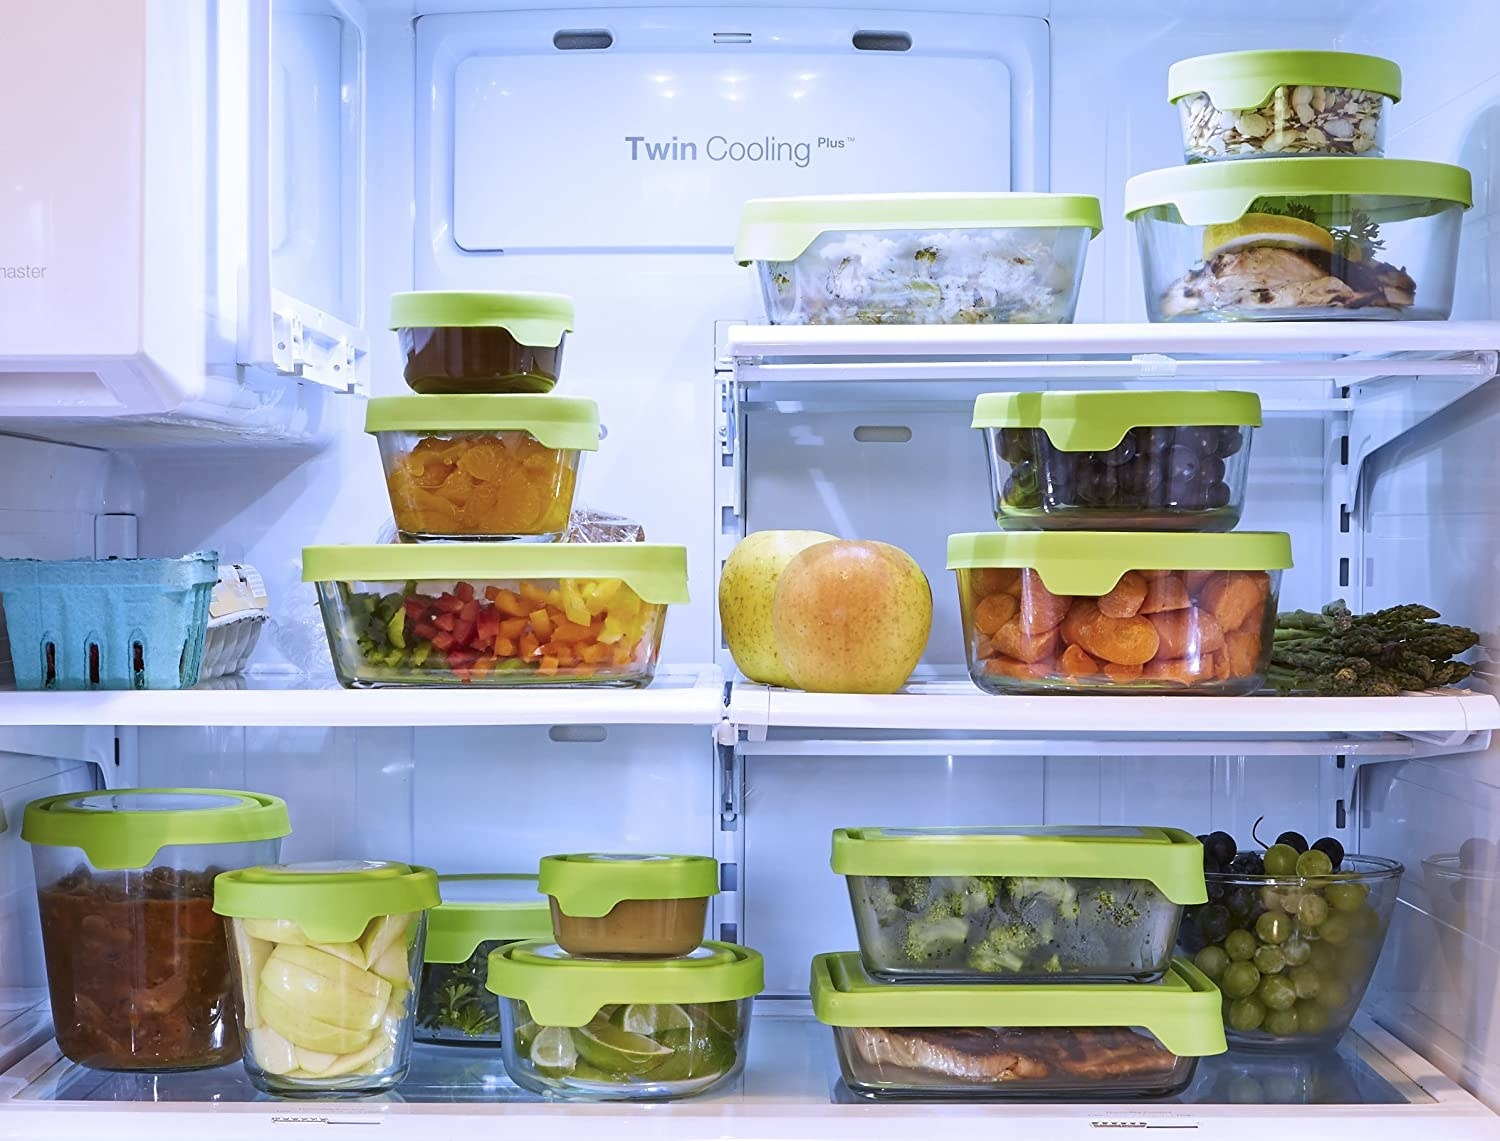 A variety of sizes of the the containers filled with different types of food in a refridgerator